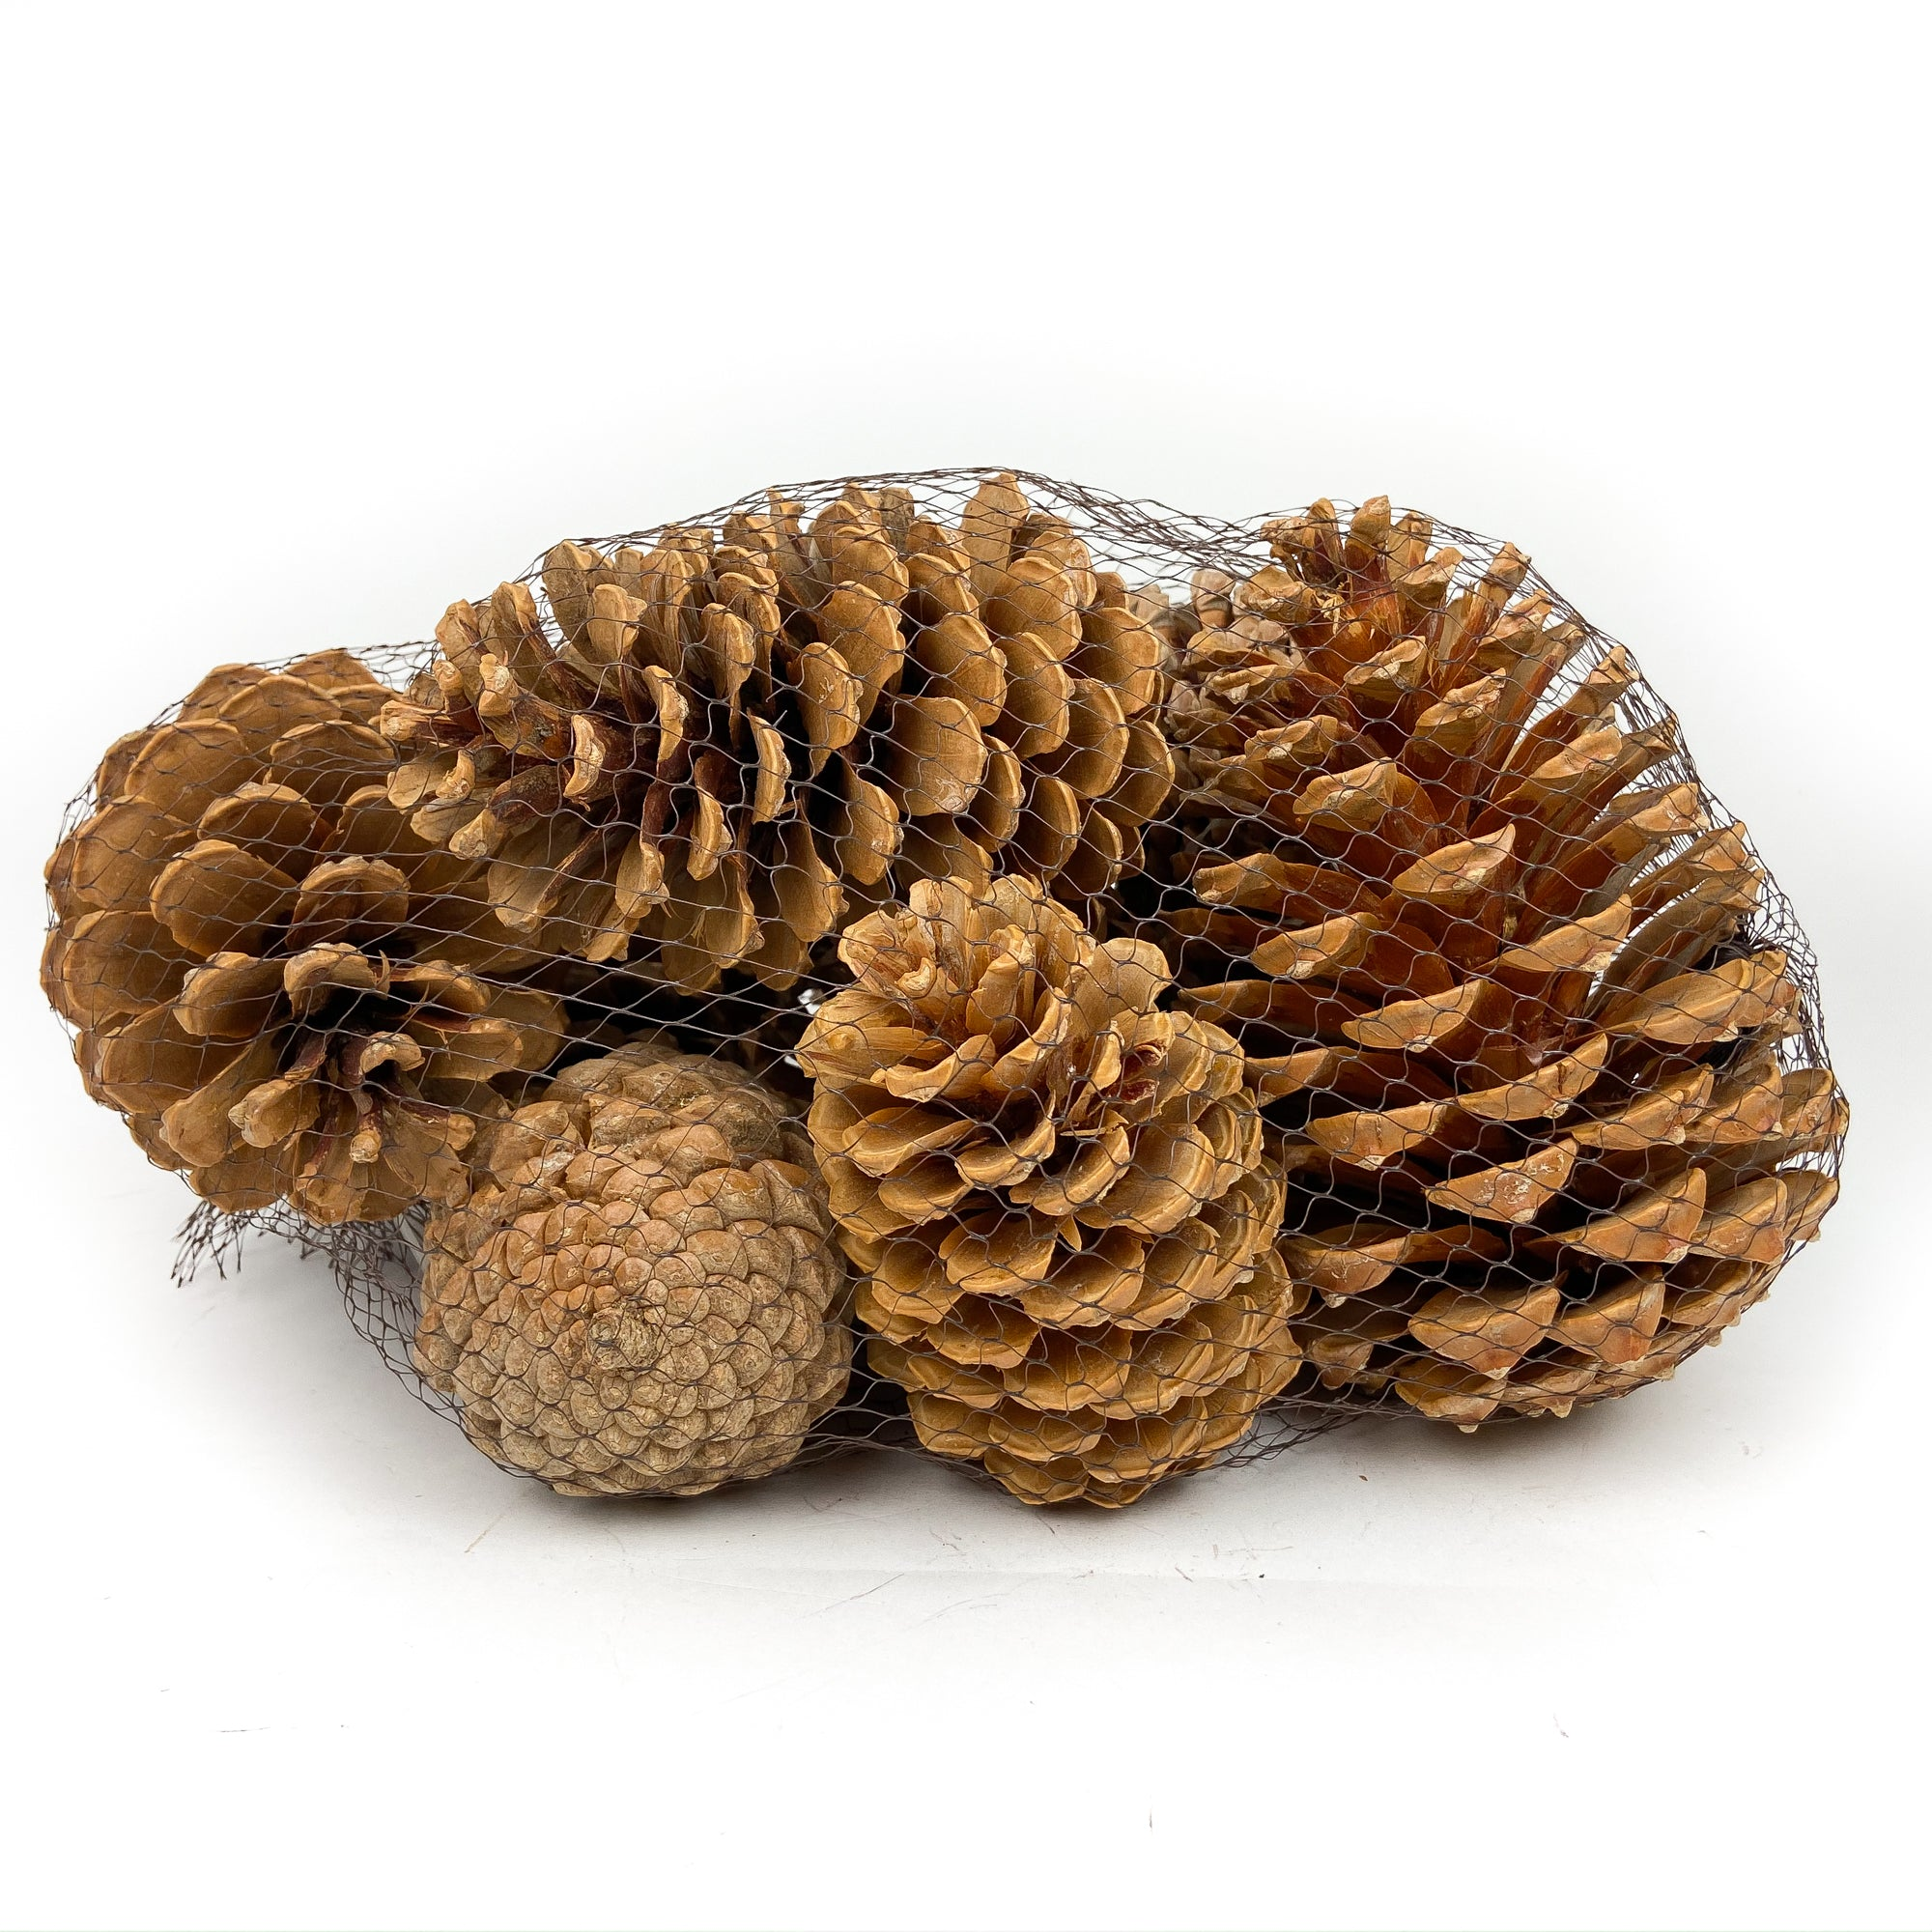 PINE-CONE-MARITIMA-BLEACH-MIXED